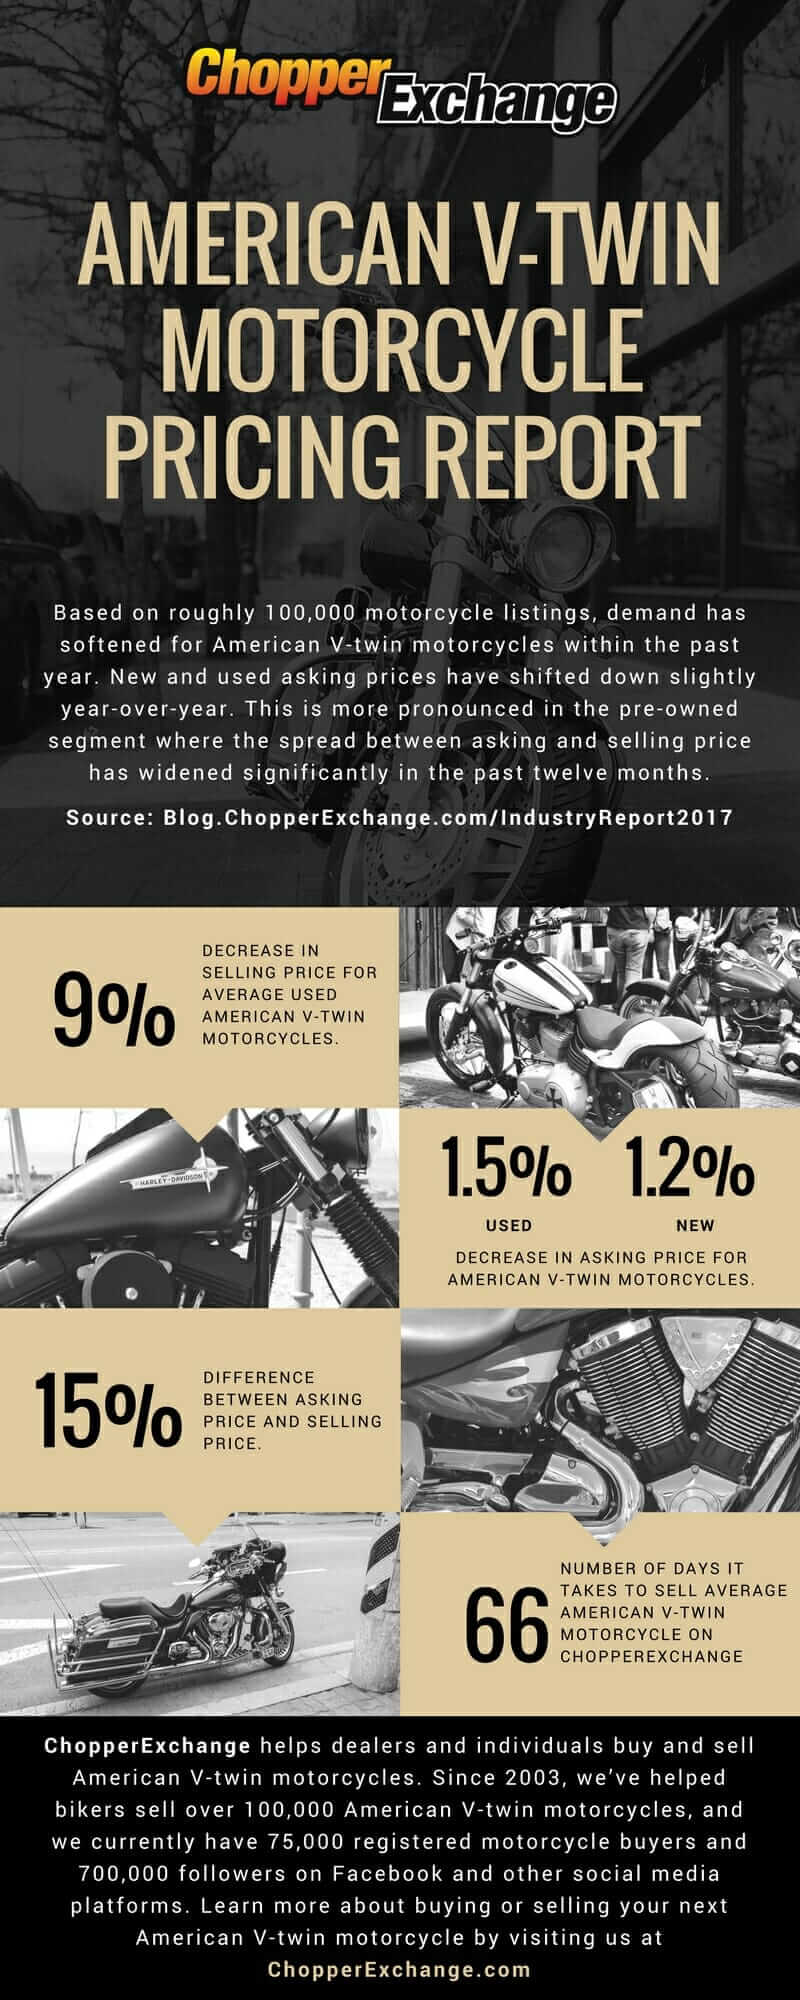 American V-twin Motorcycle Pricing Report 2017 by ChopperExchange